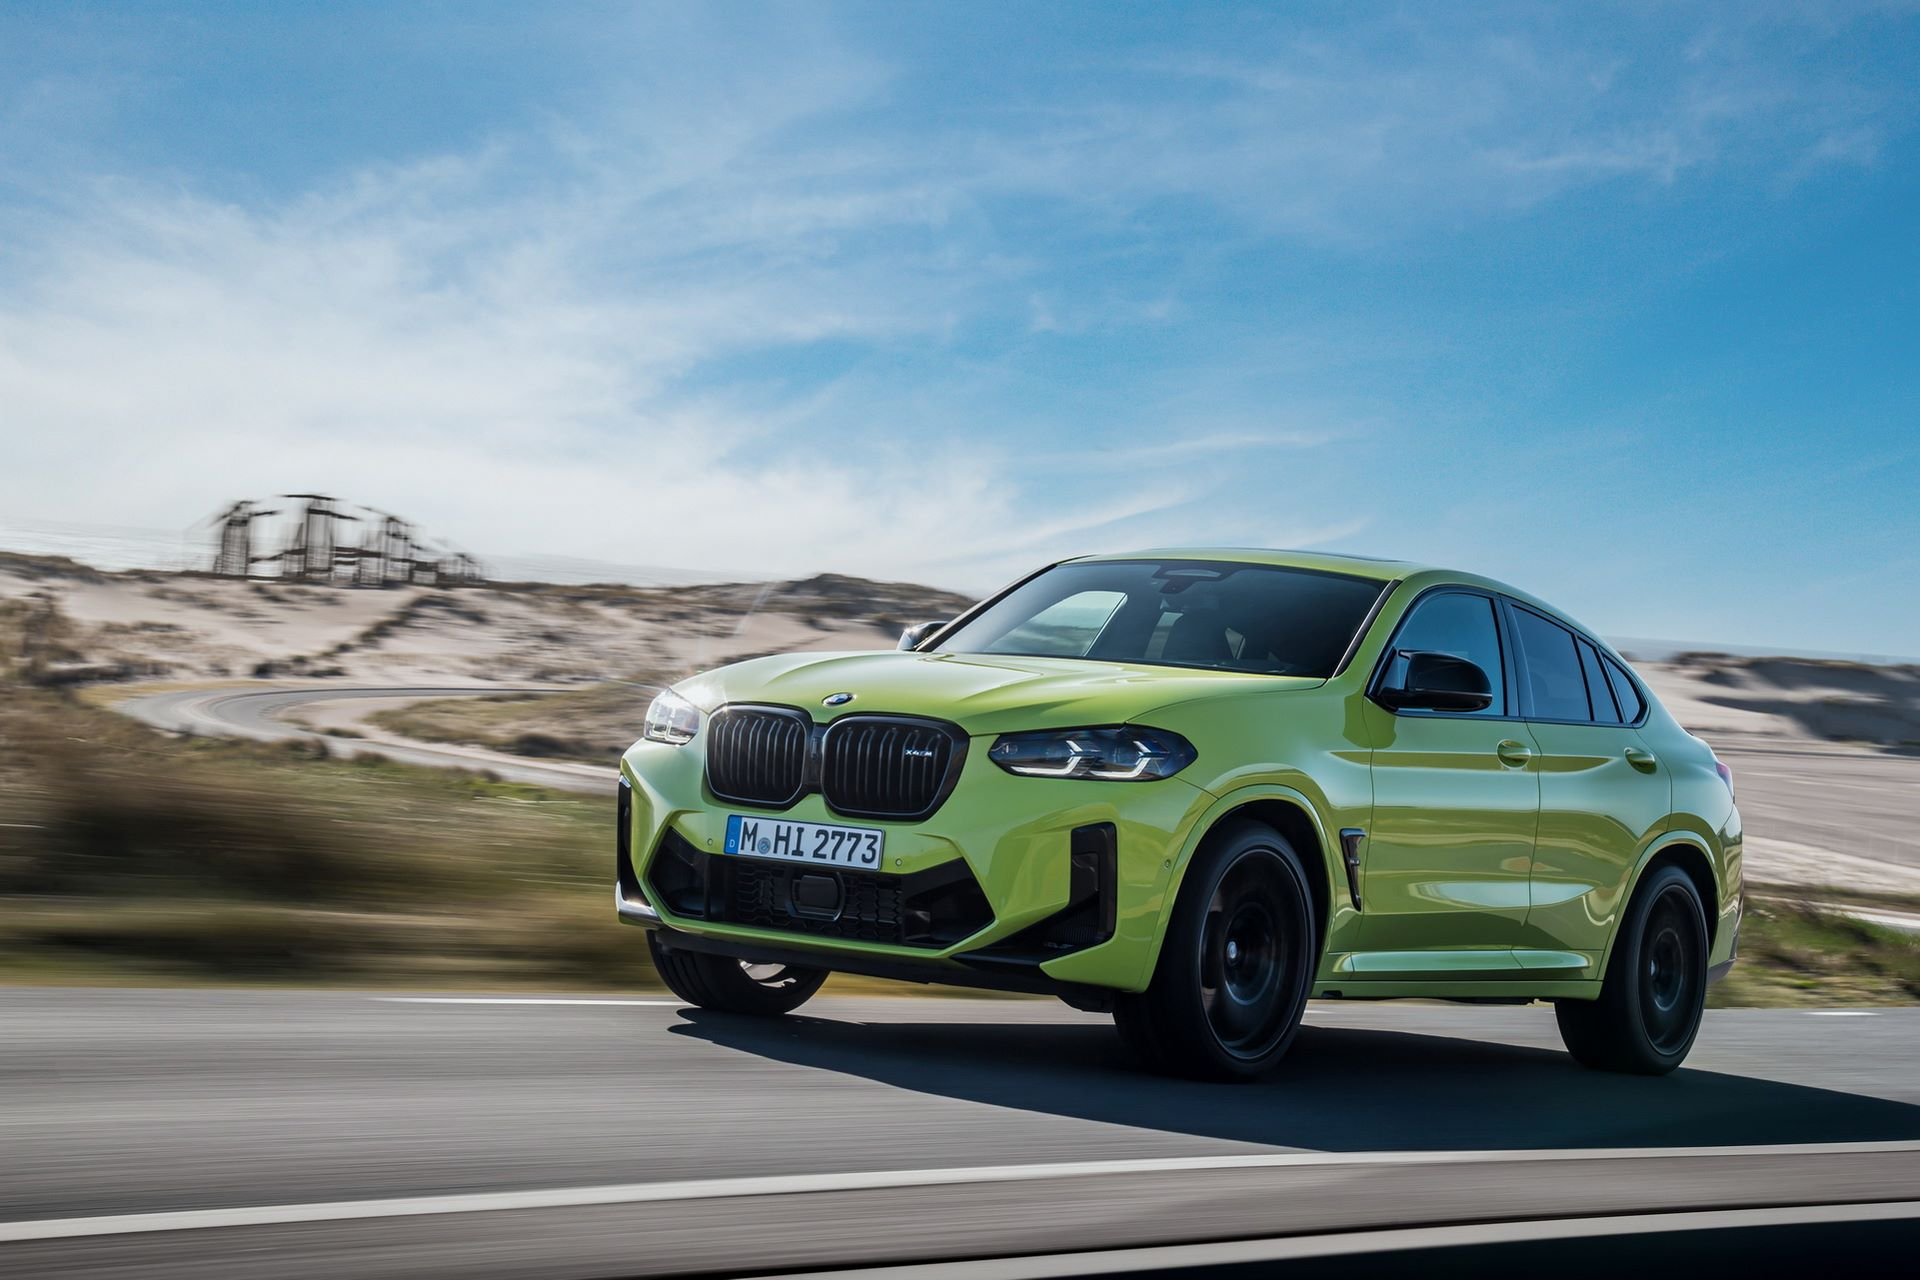 BMW-X3-M-X4-M-Competition-25